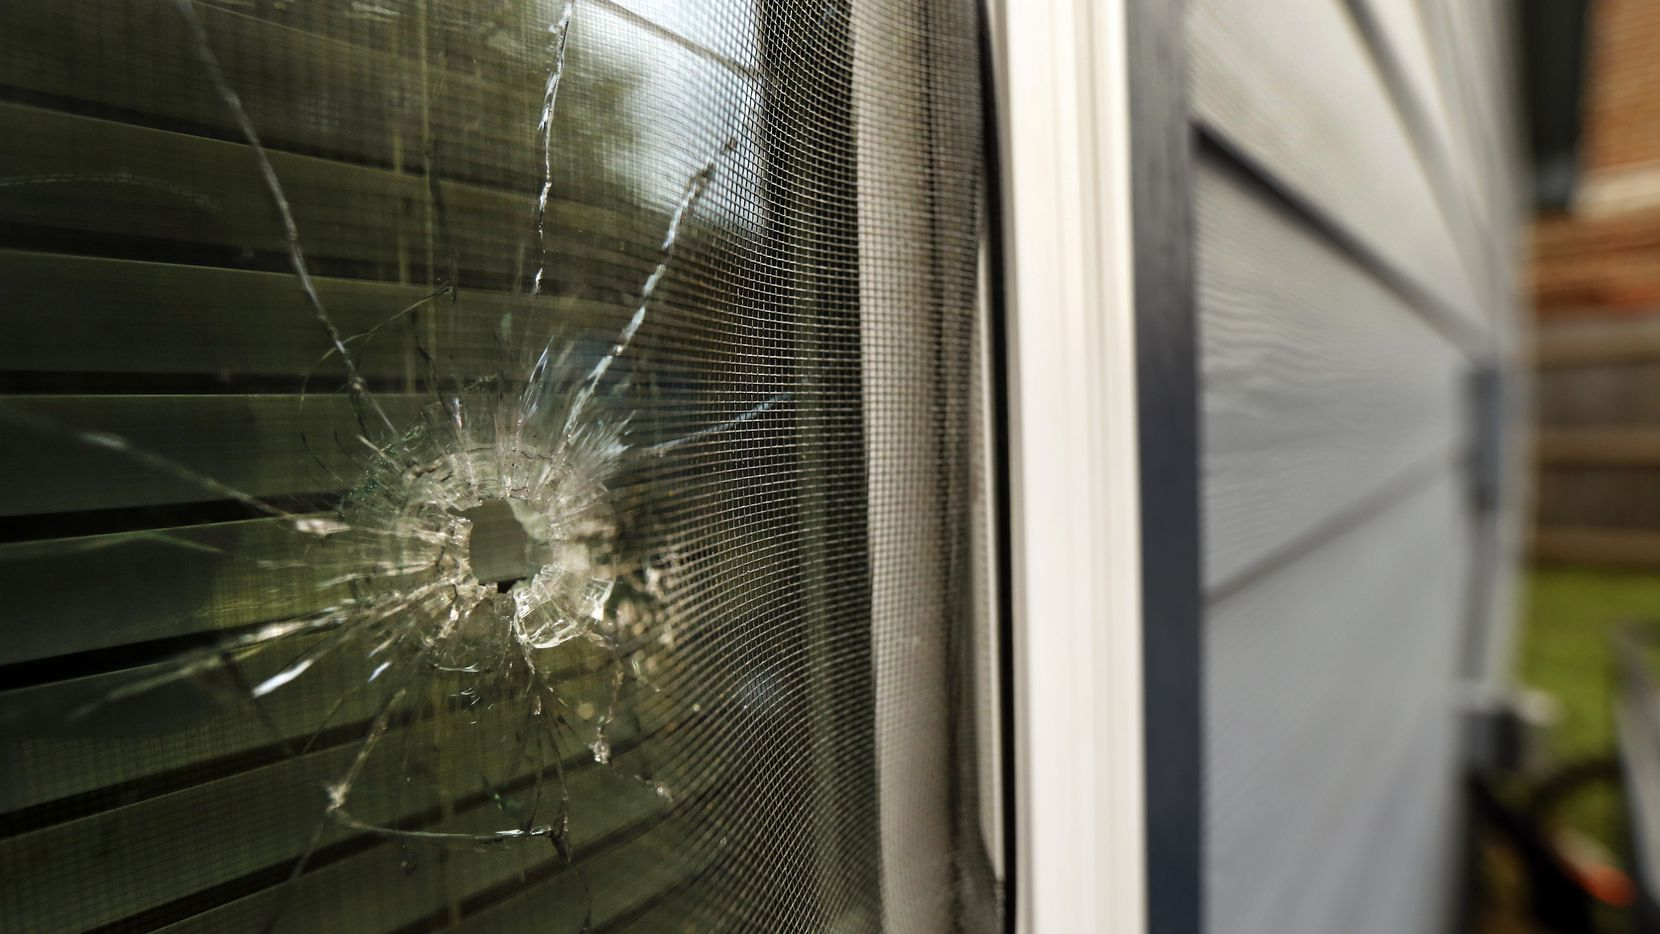 A bullet hole from the police officer's shot is seen in the rear window of Atatiana Jefferson's home on E. Allen Ave in Fort Worth, Tuesday, October 15, 2019 after former Fort Worth police officer Aaron Dean shot into the home and killed Atatiana Jefferson last weekend. In the wake of Fort Worth officer Aaron Dean shooting and killing Jefferson in her home, people have been stopping to leave flowers at a memorial in front of the house. (Tom Fox/The Dallas Morning News)